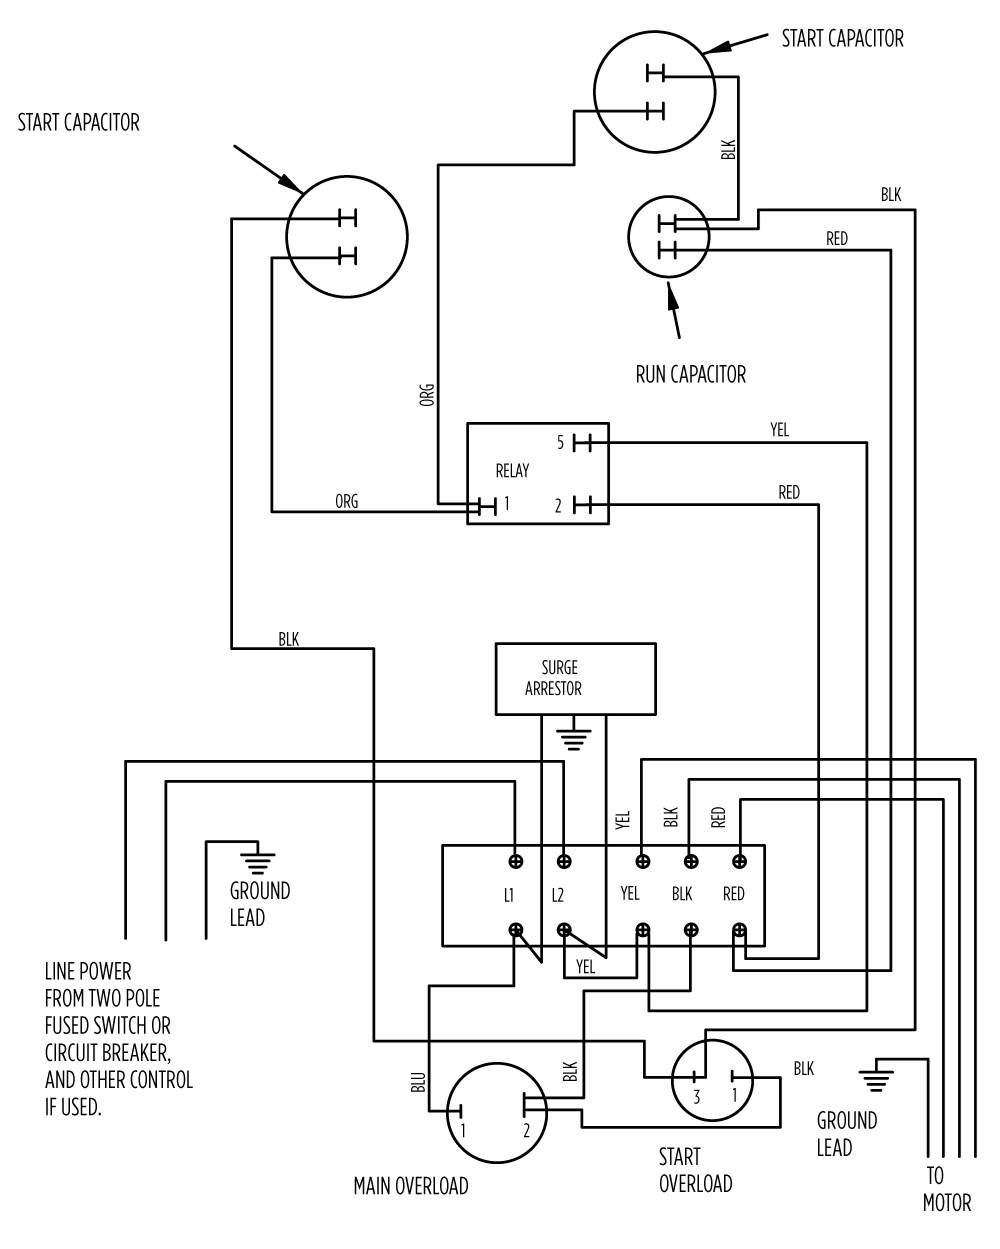 75 hp standard 282 201 9210_aim gallery?format\=jpg\&quality\=80 franklin electric wiring diagram data wiring diagram